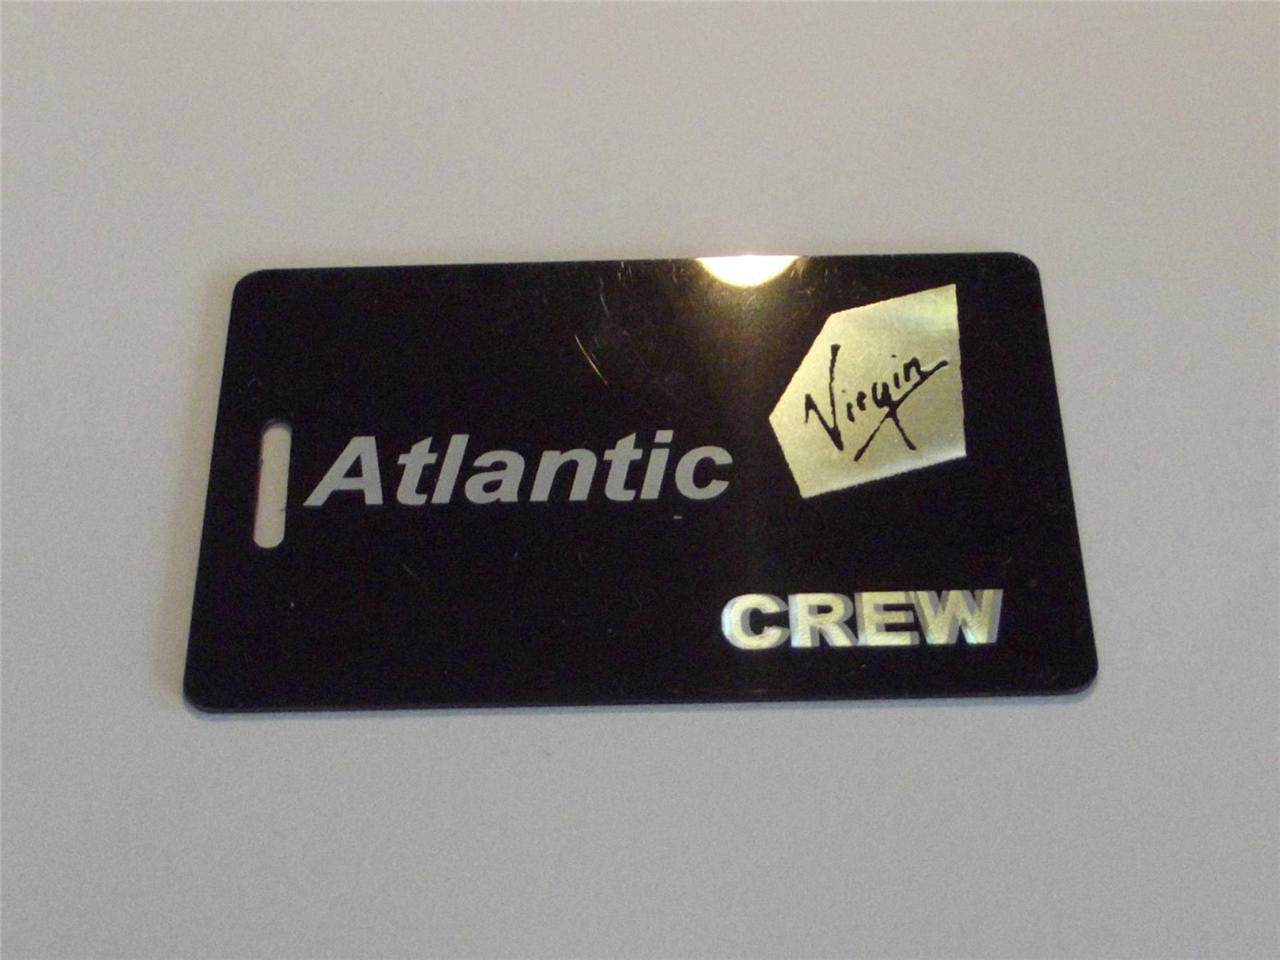 Novelty CREW LUGGAGE Tagg  VIRGIN AIR ATLANTIC Black  LOGO ( crew) -  Inflightgoods   - 1